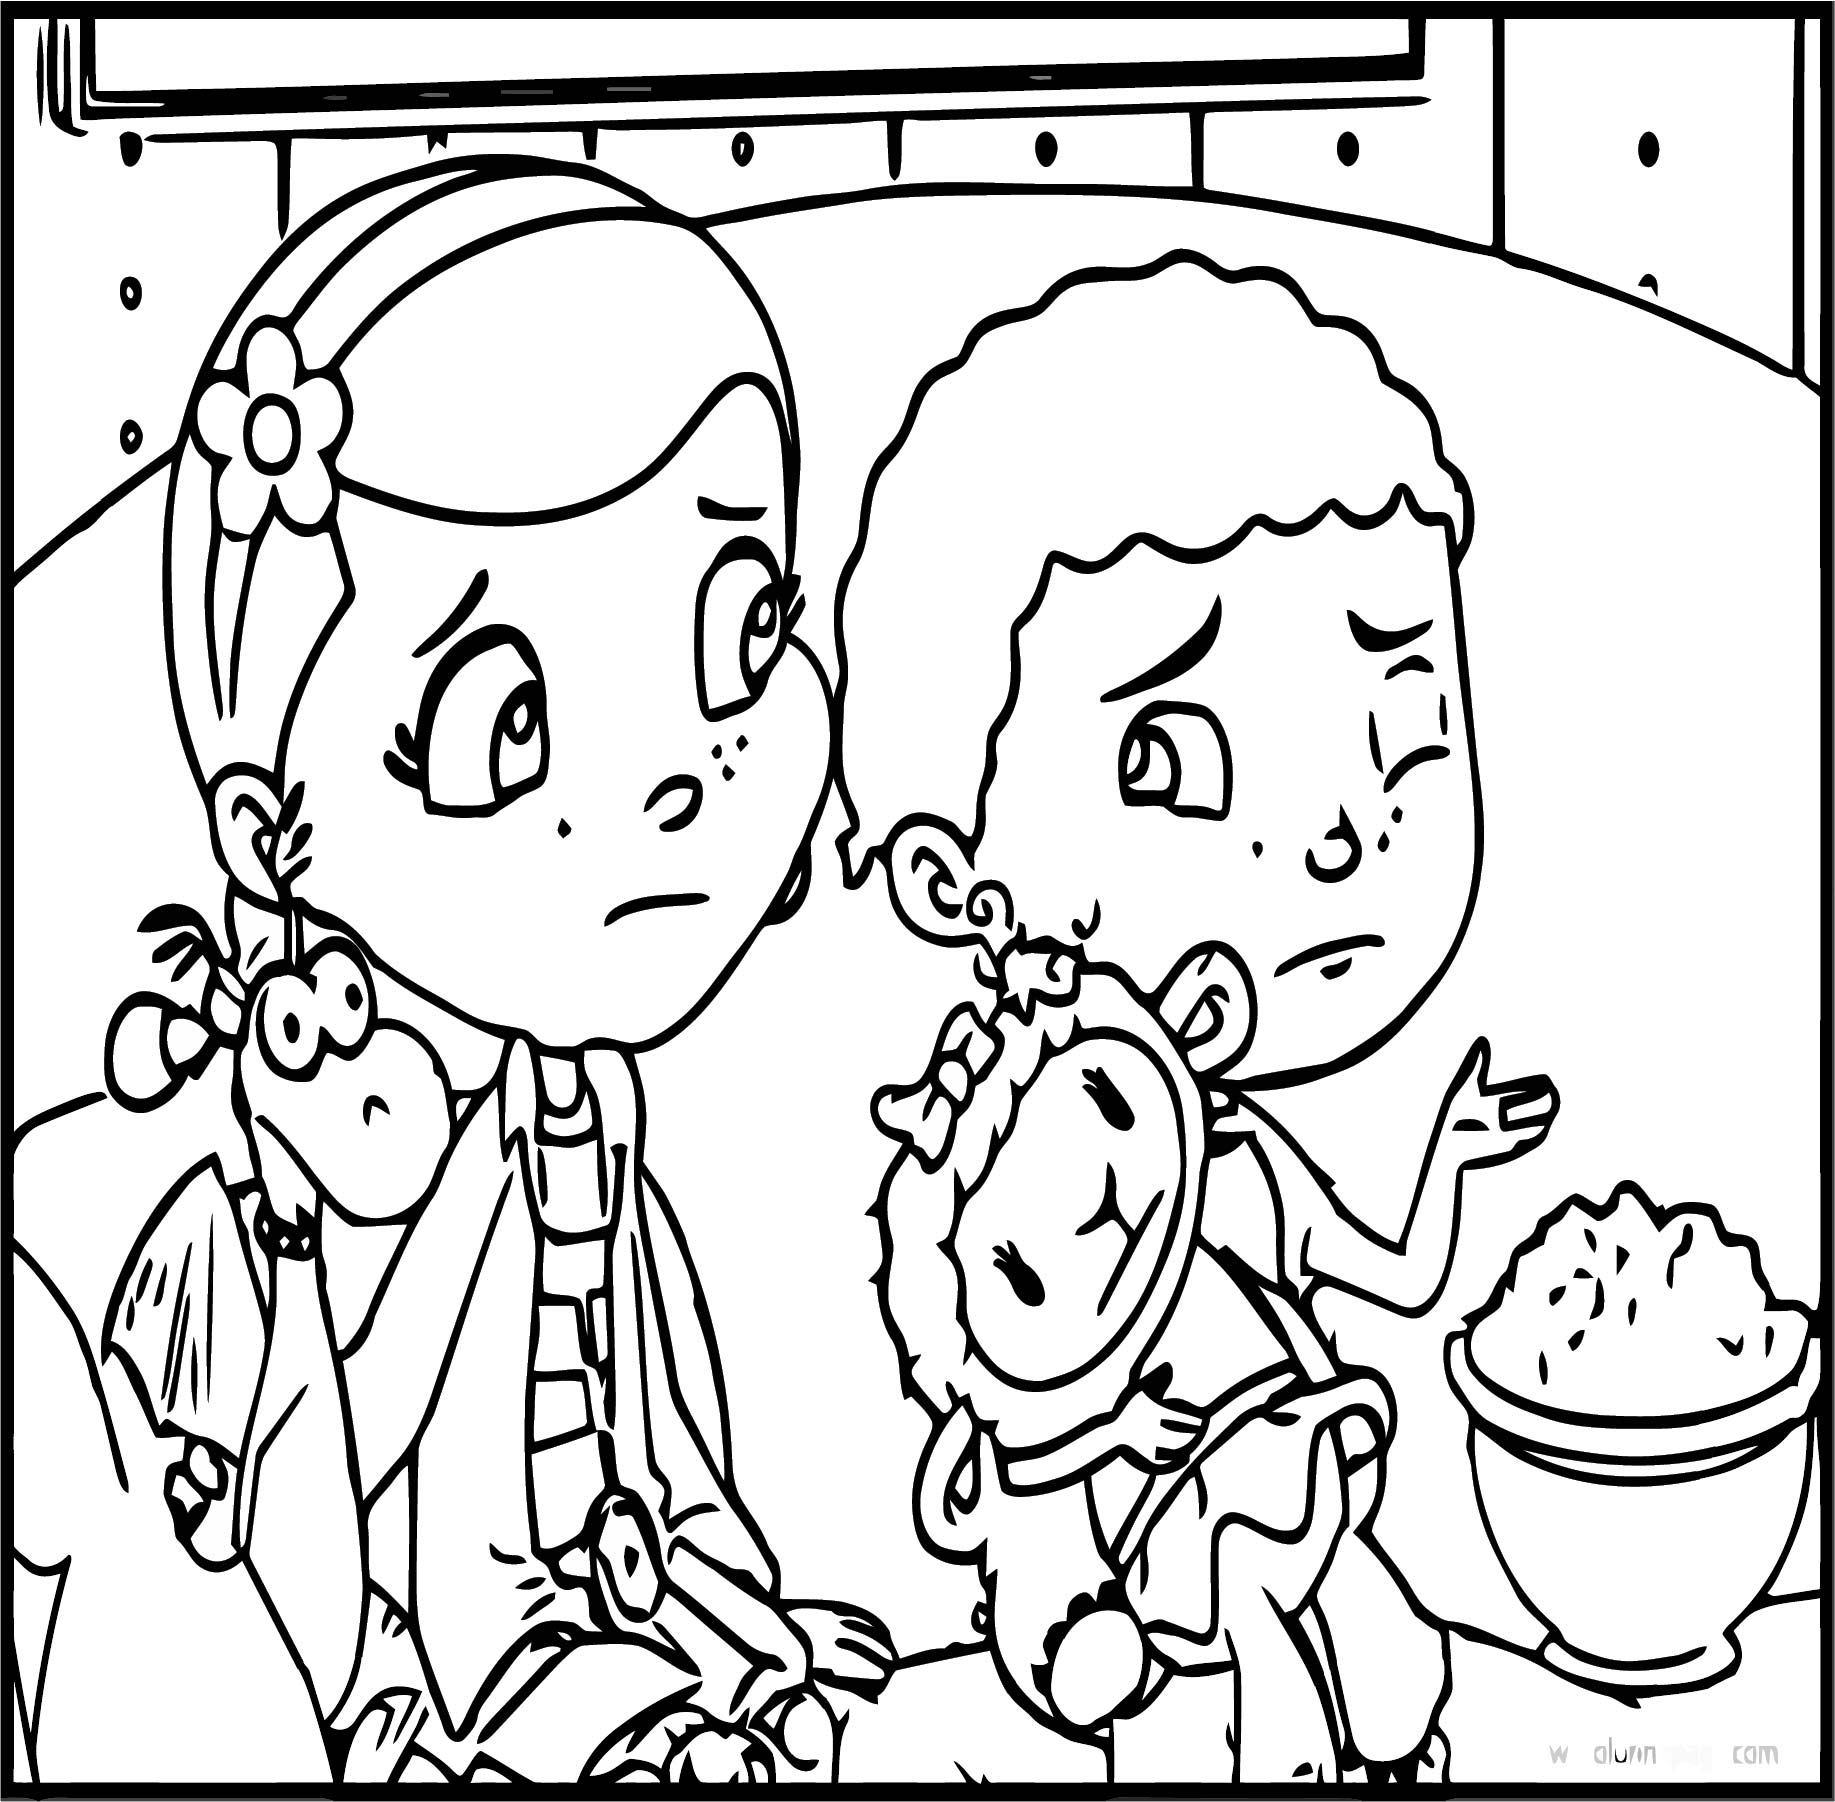 Stuffy Doc Donny Lambie Cartoon Coloring Page ...